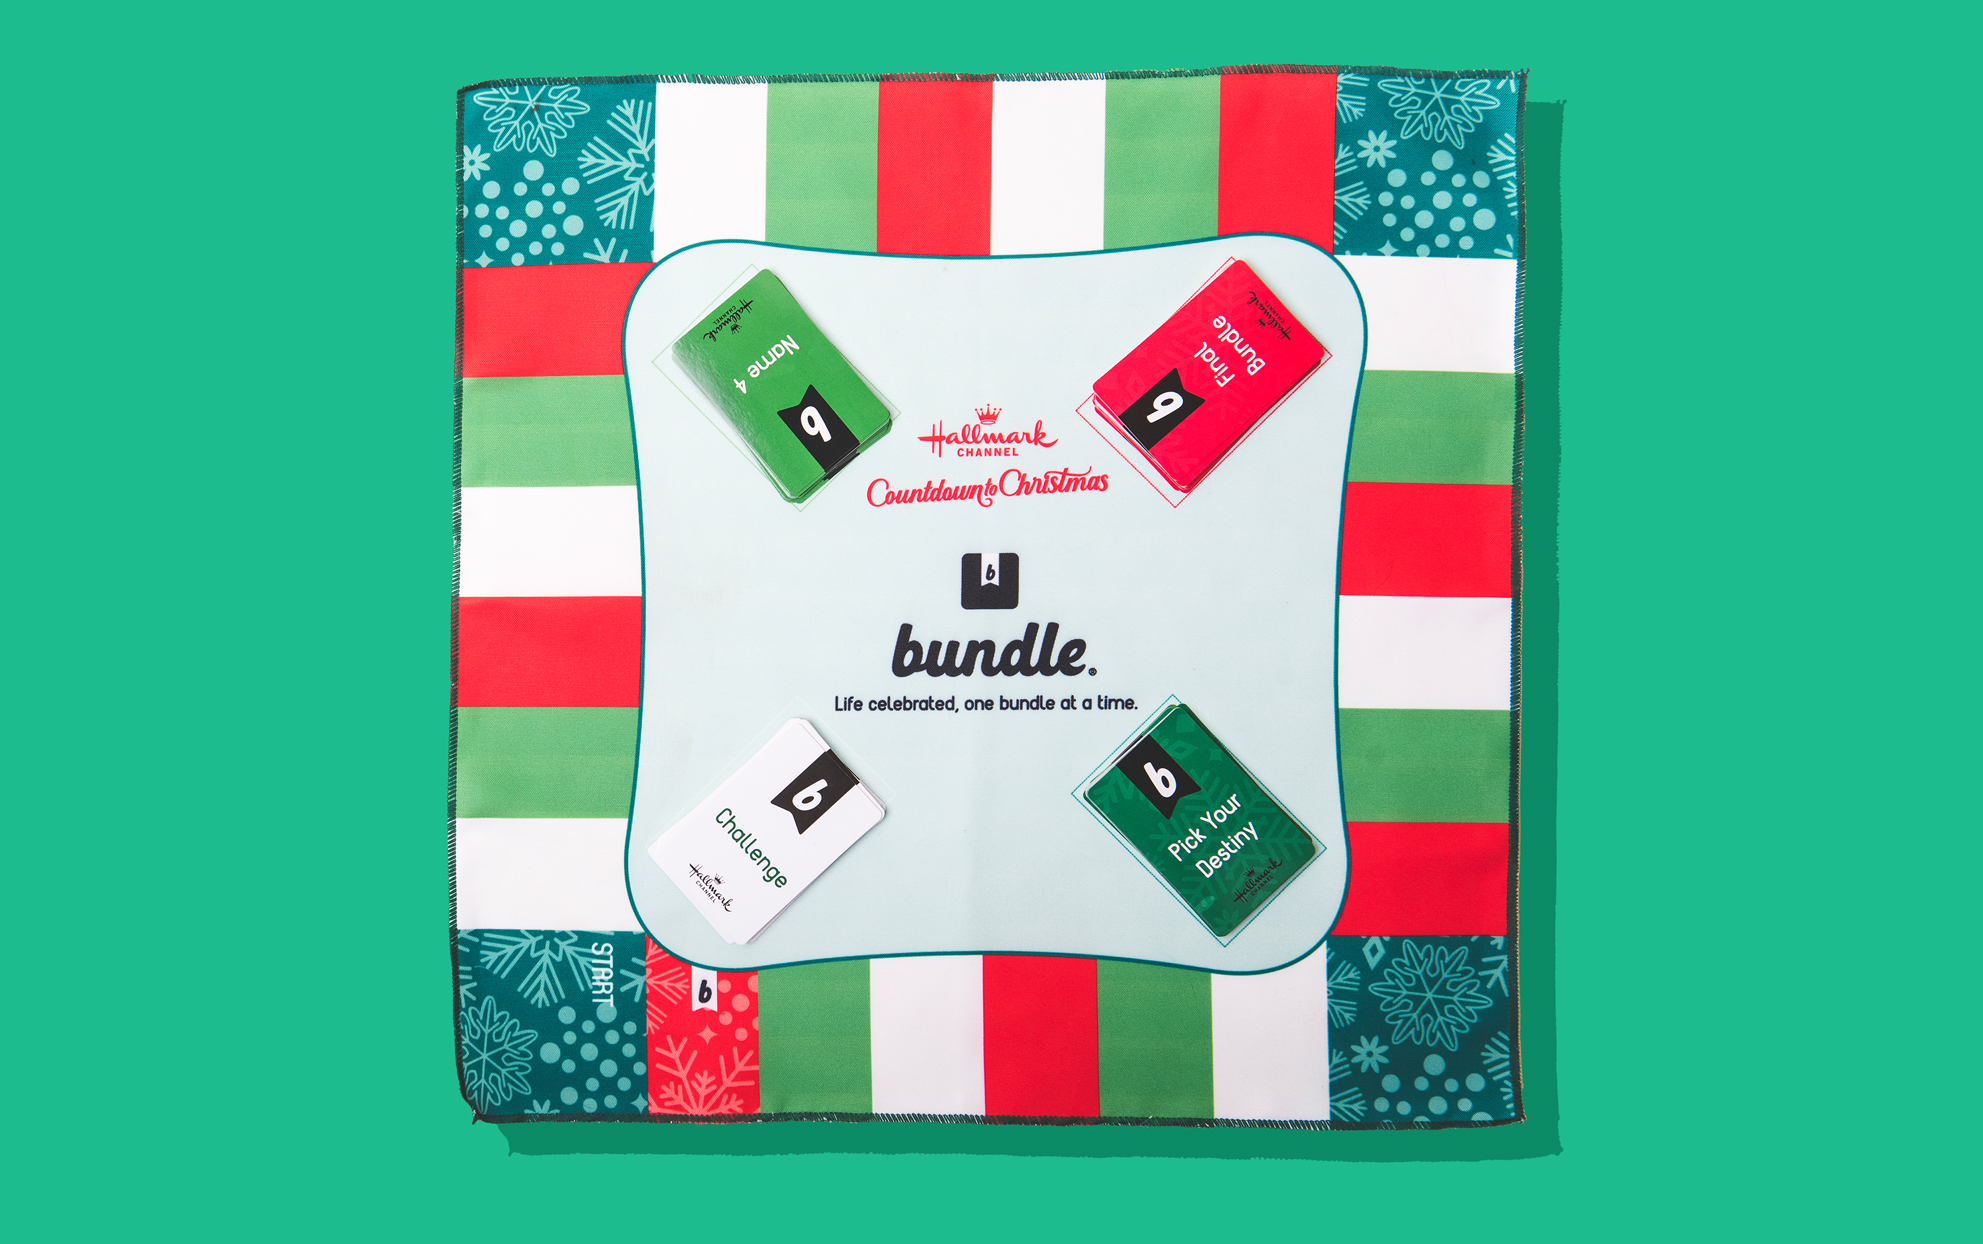 red white and green cloth board game on a green background